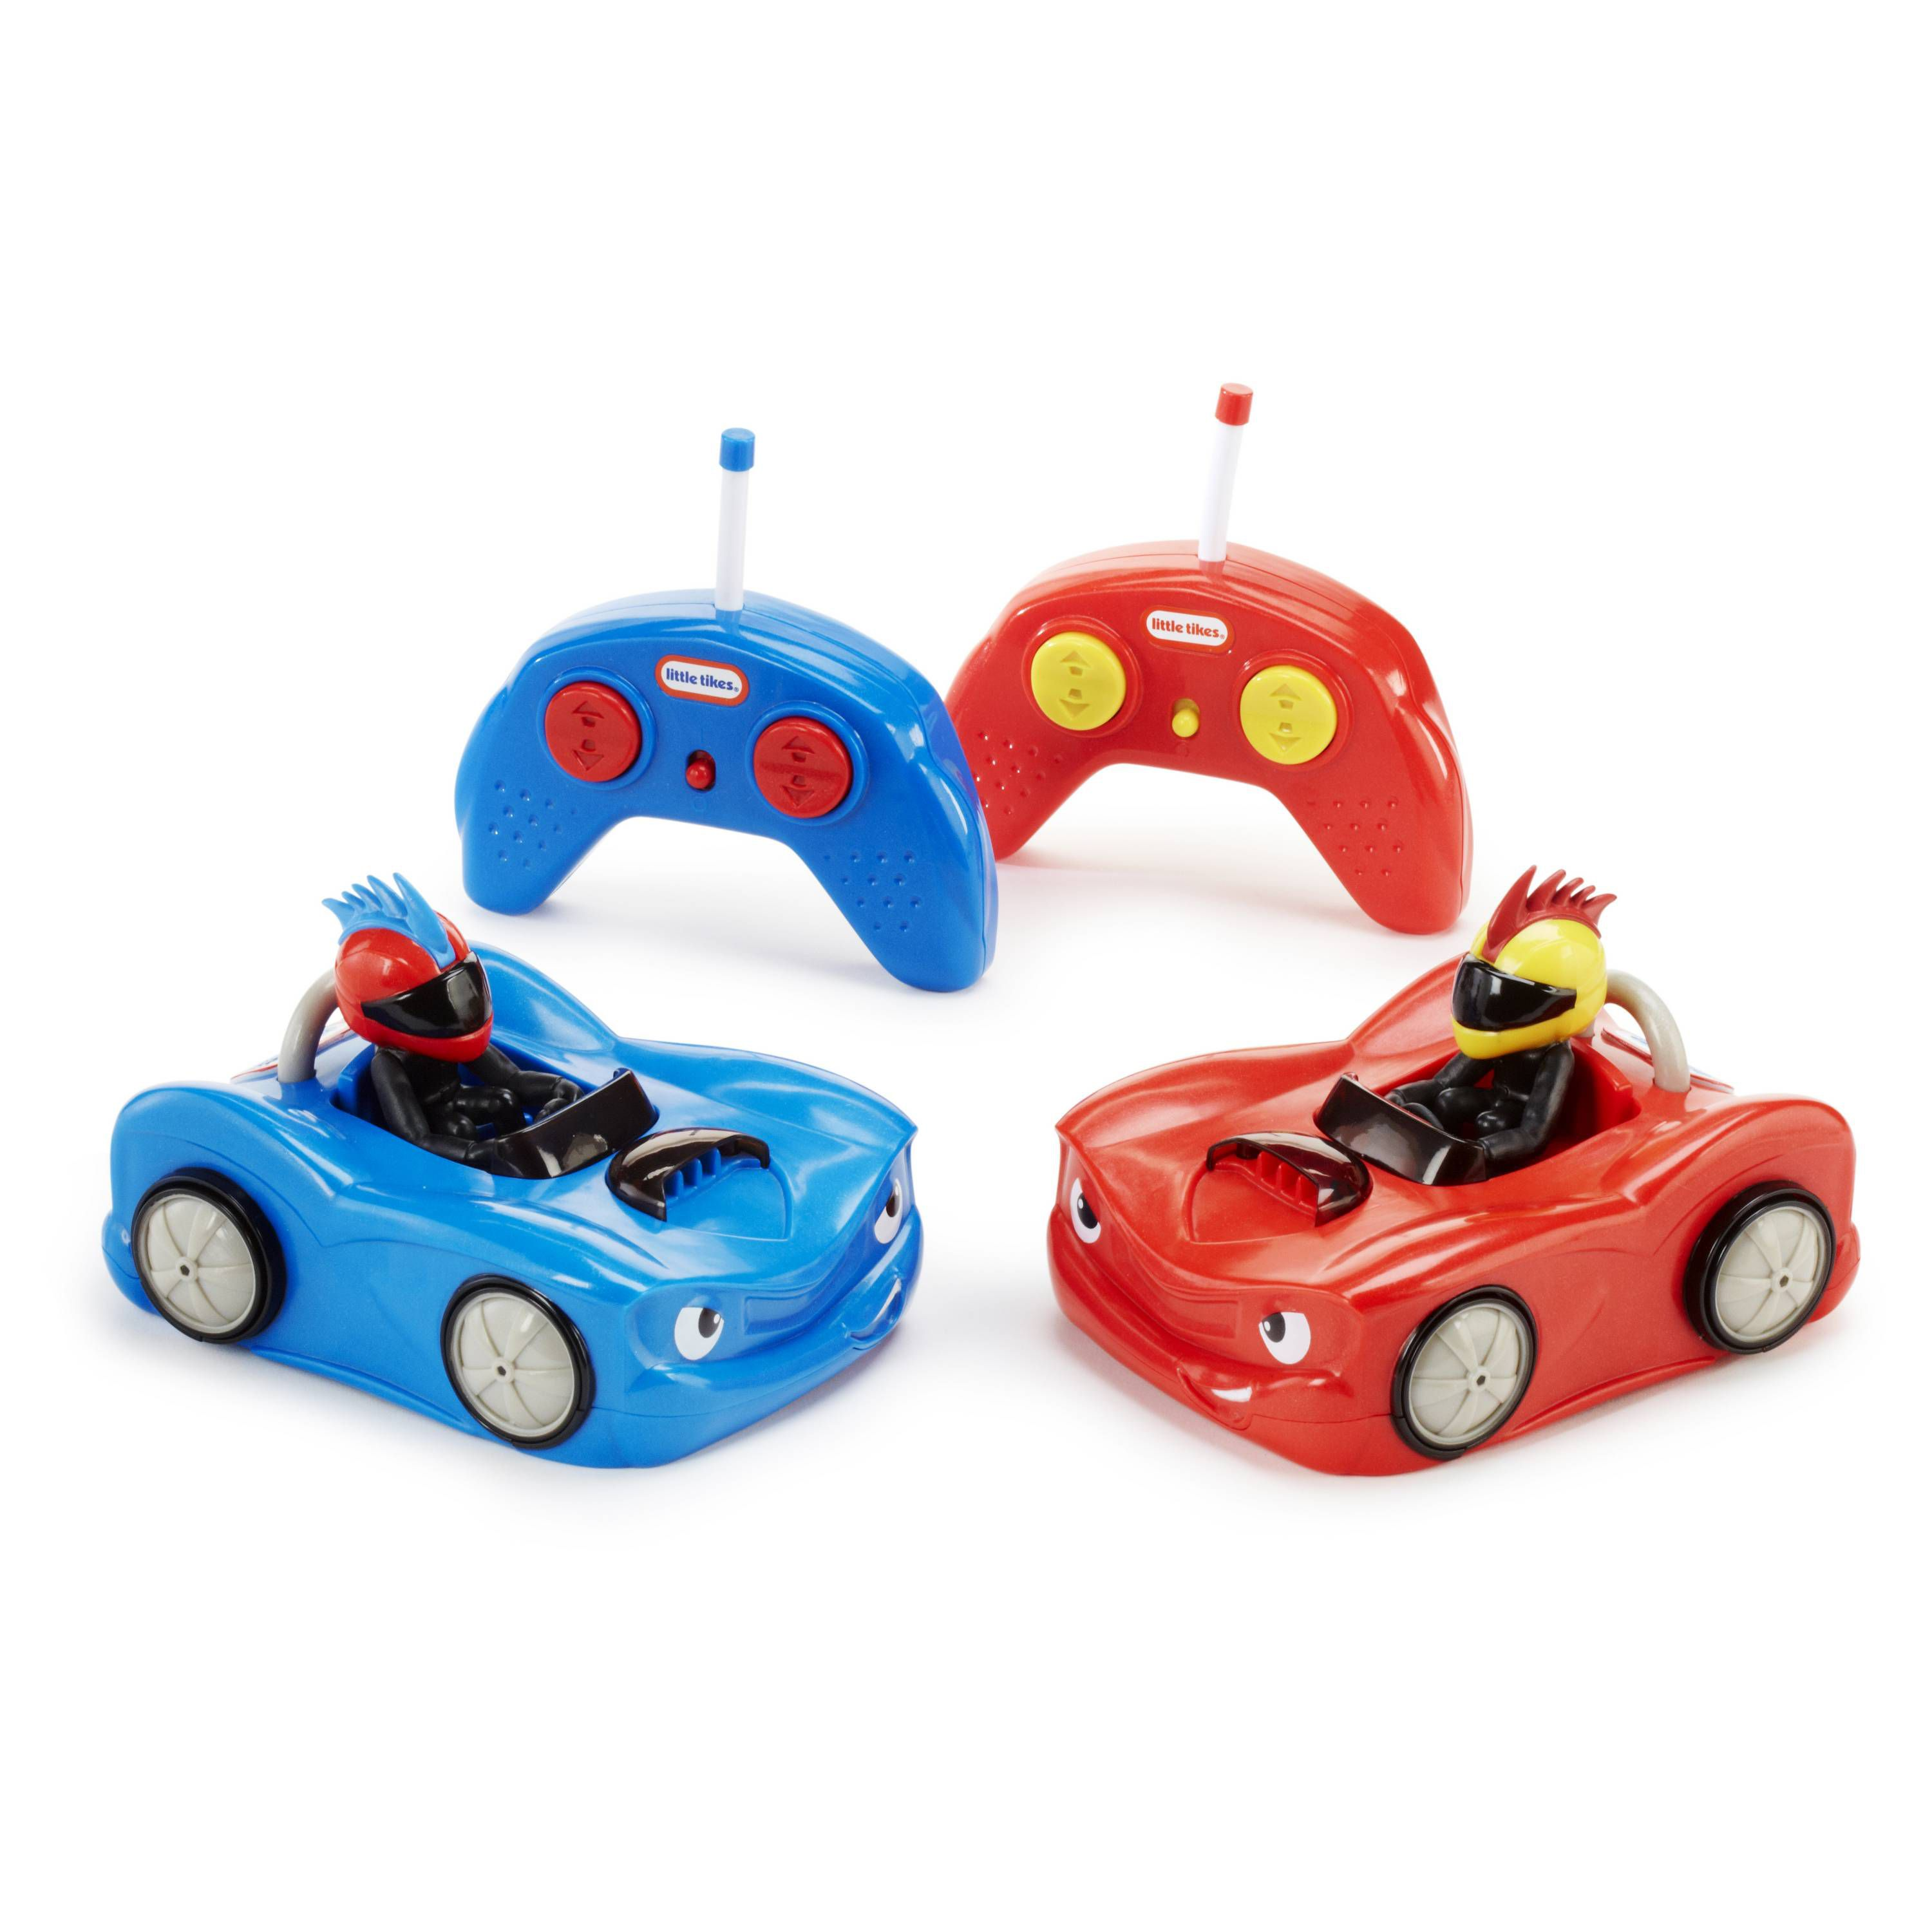 The 8 Best Toy Cars For Kids To Buy In 2019